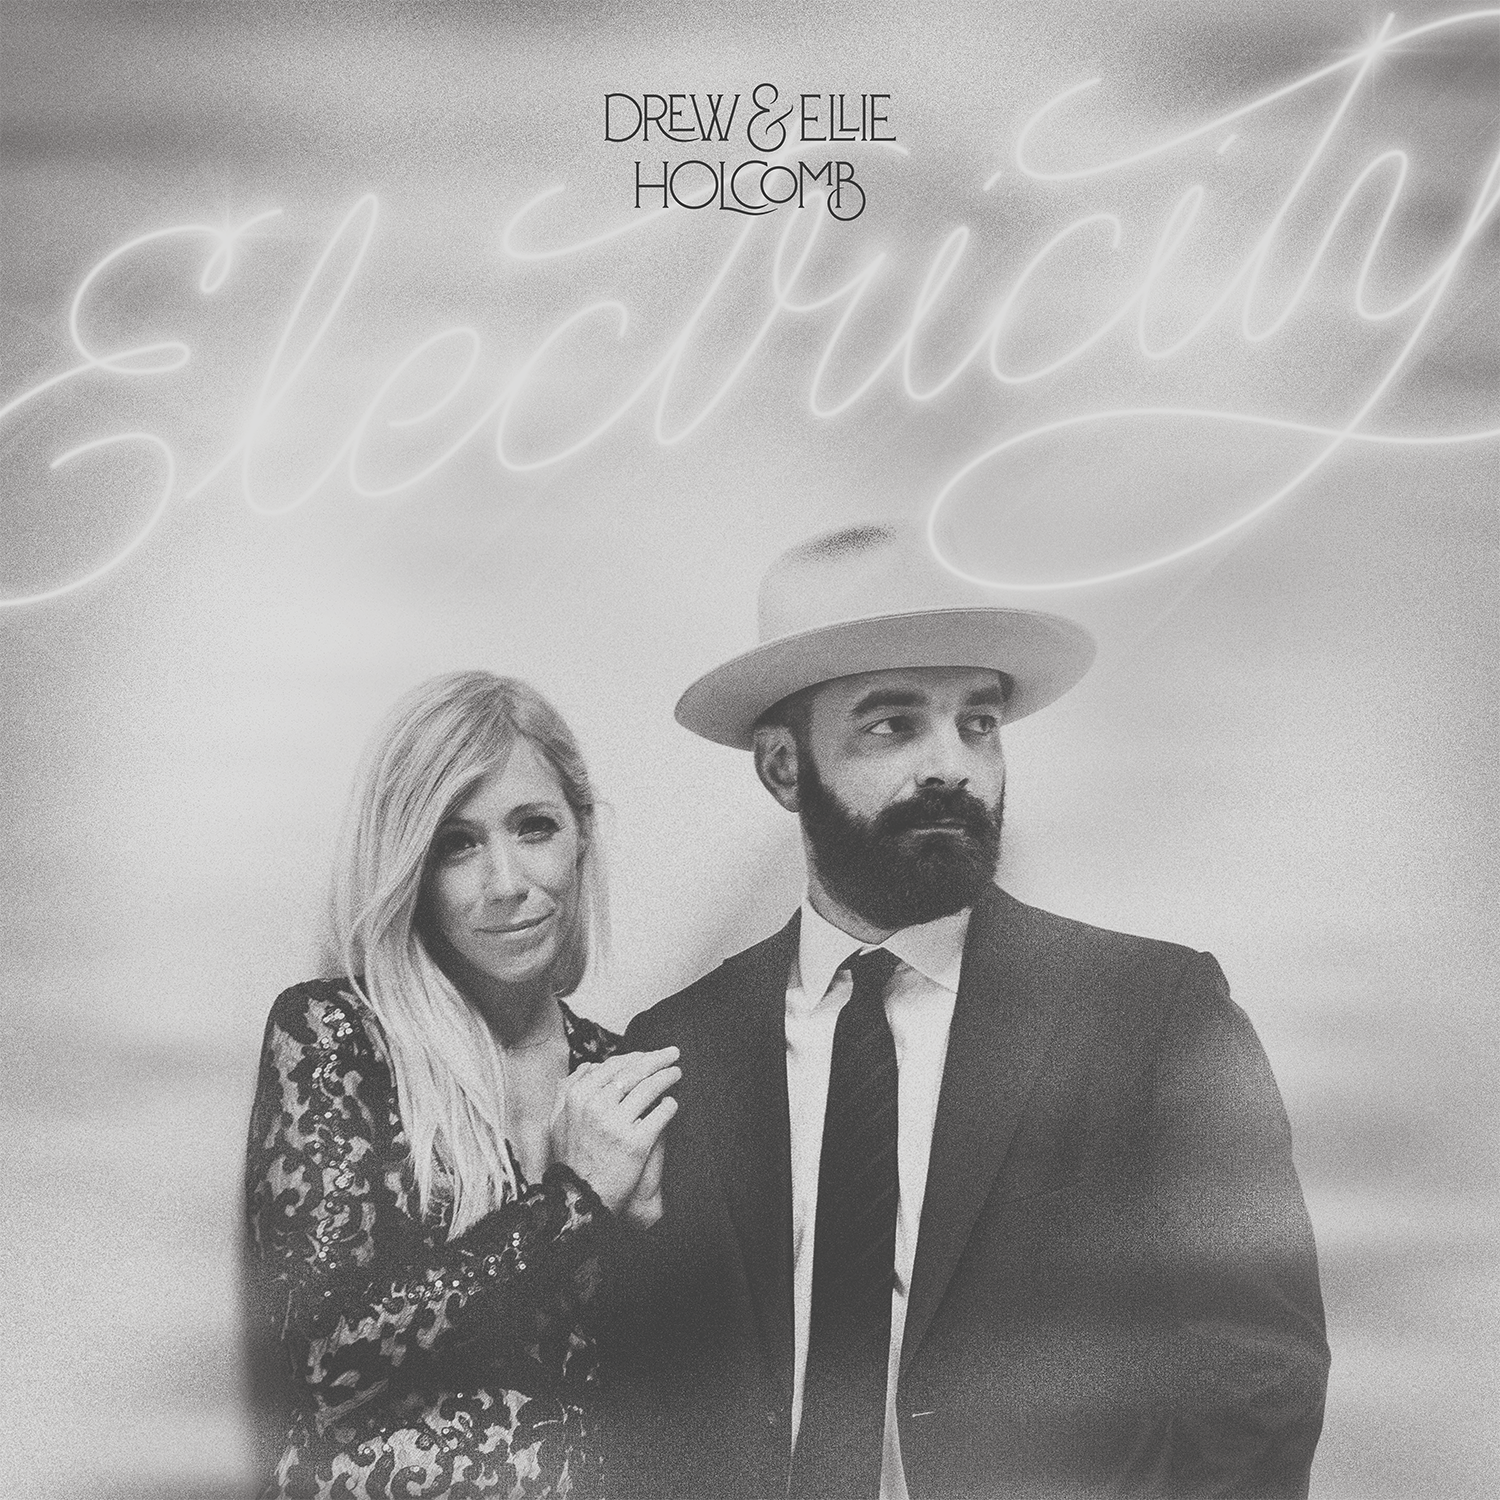 Drew & Ellie Holcomb - Electricity